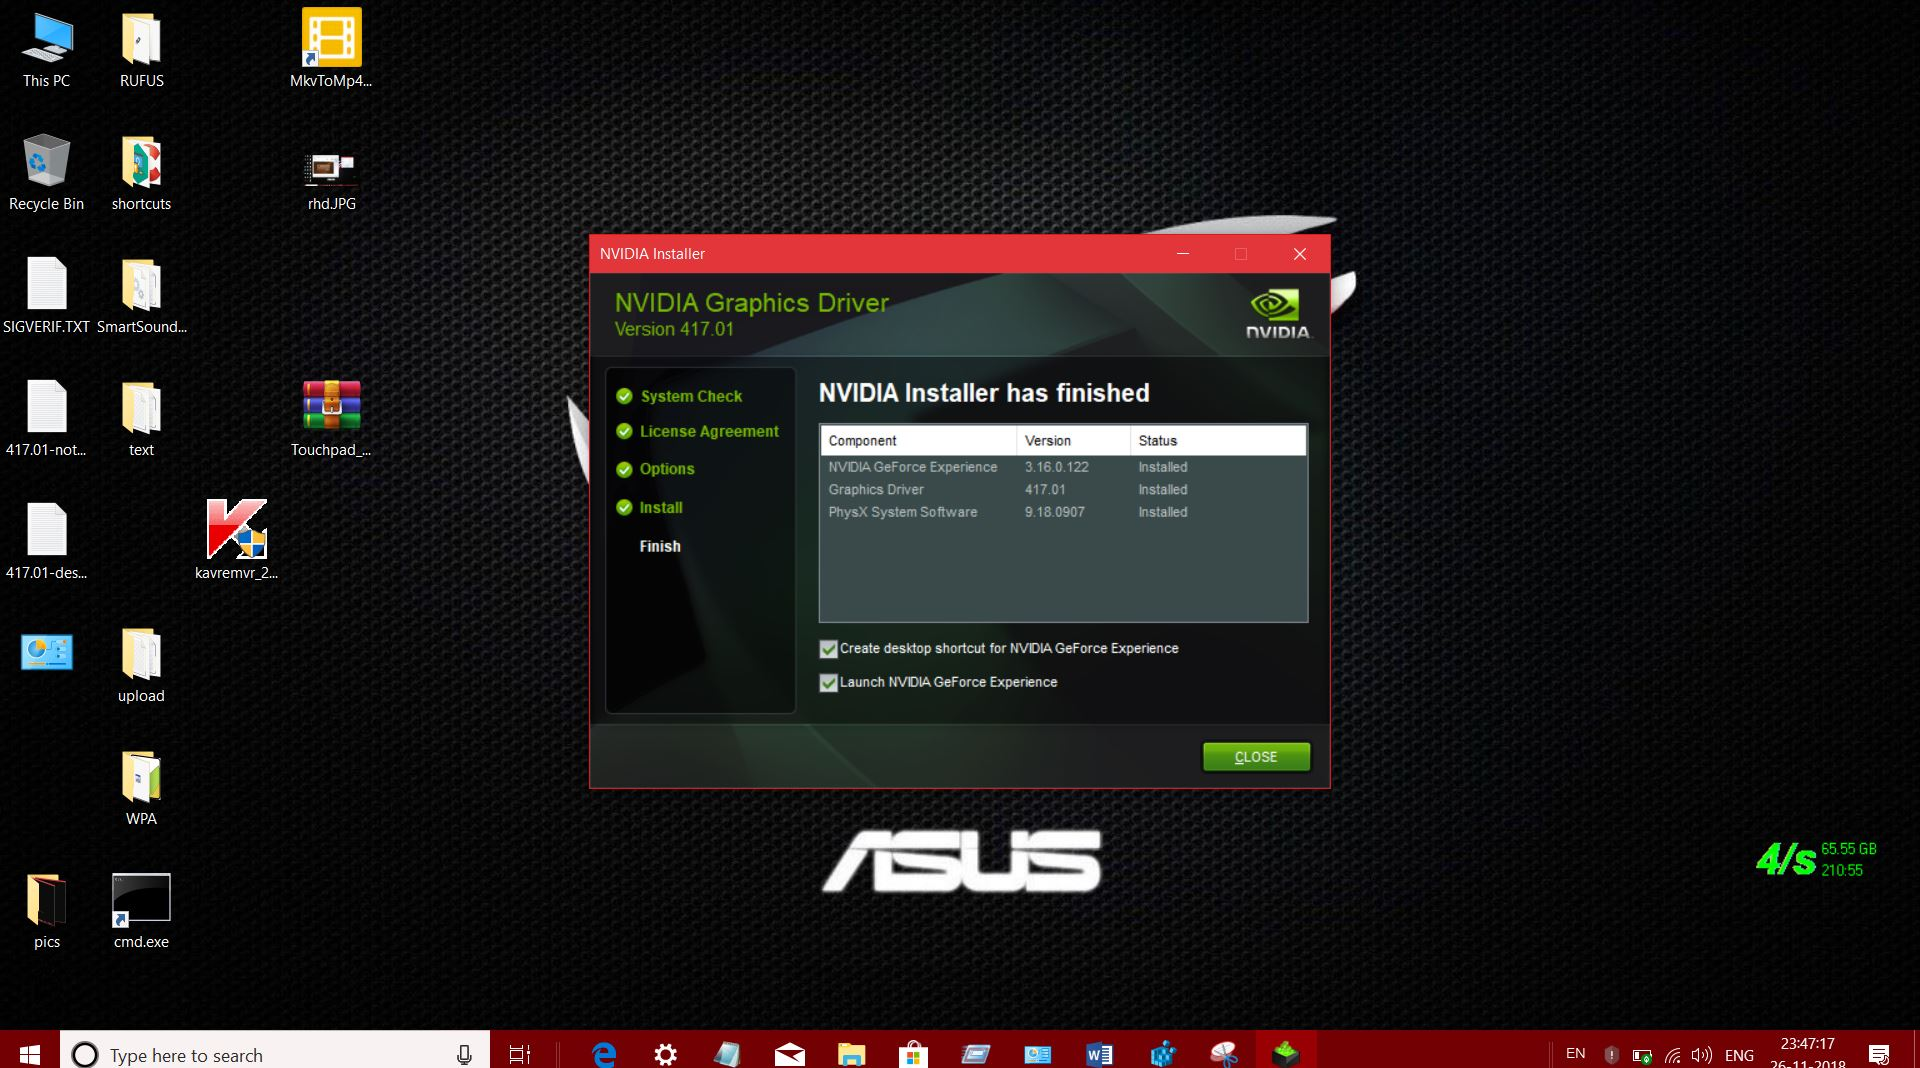 NVIDIA RELEASED NEW GEFORCE WHQL DRIVER V417 01 FOR NOTEBOOKS TO